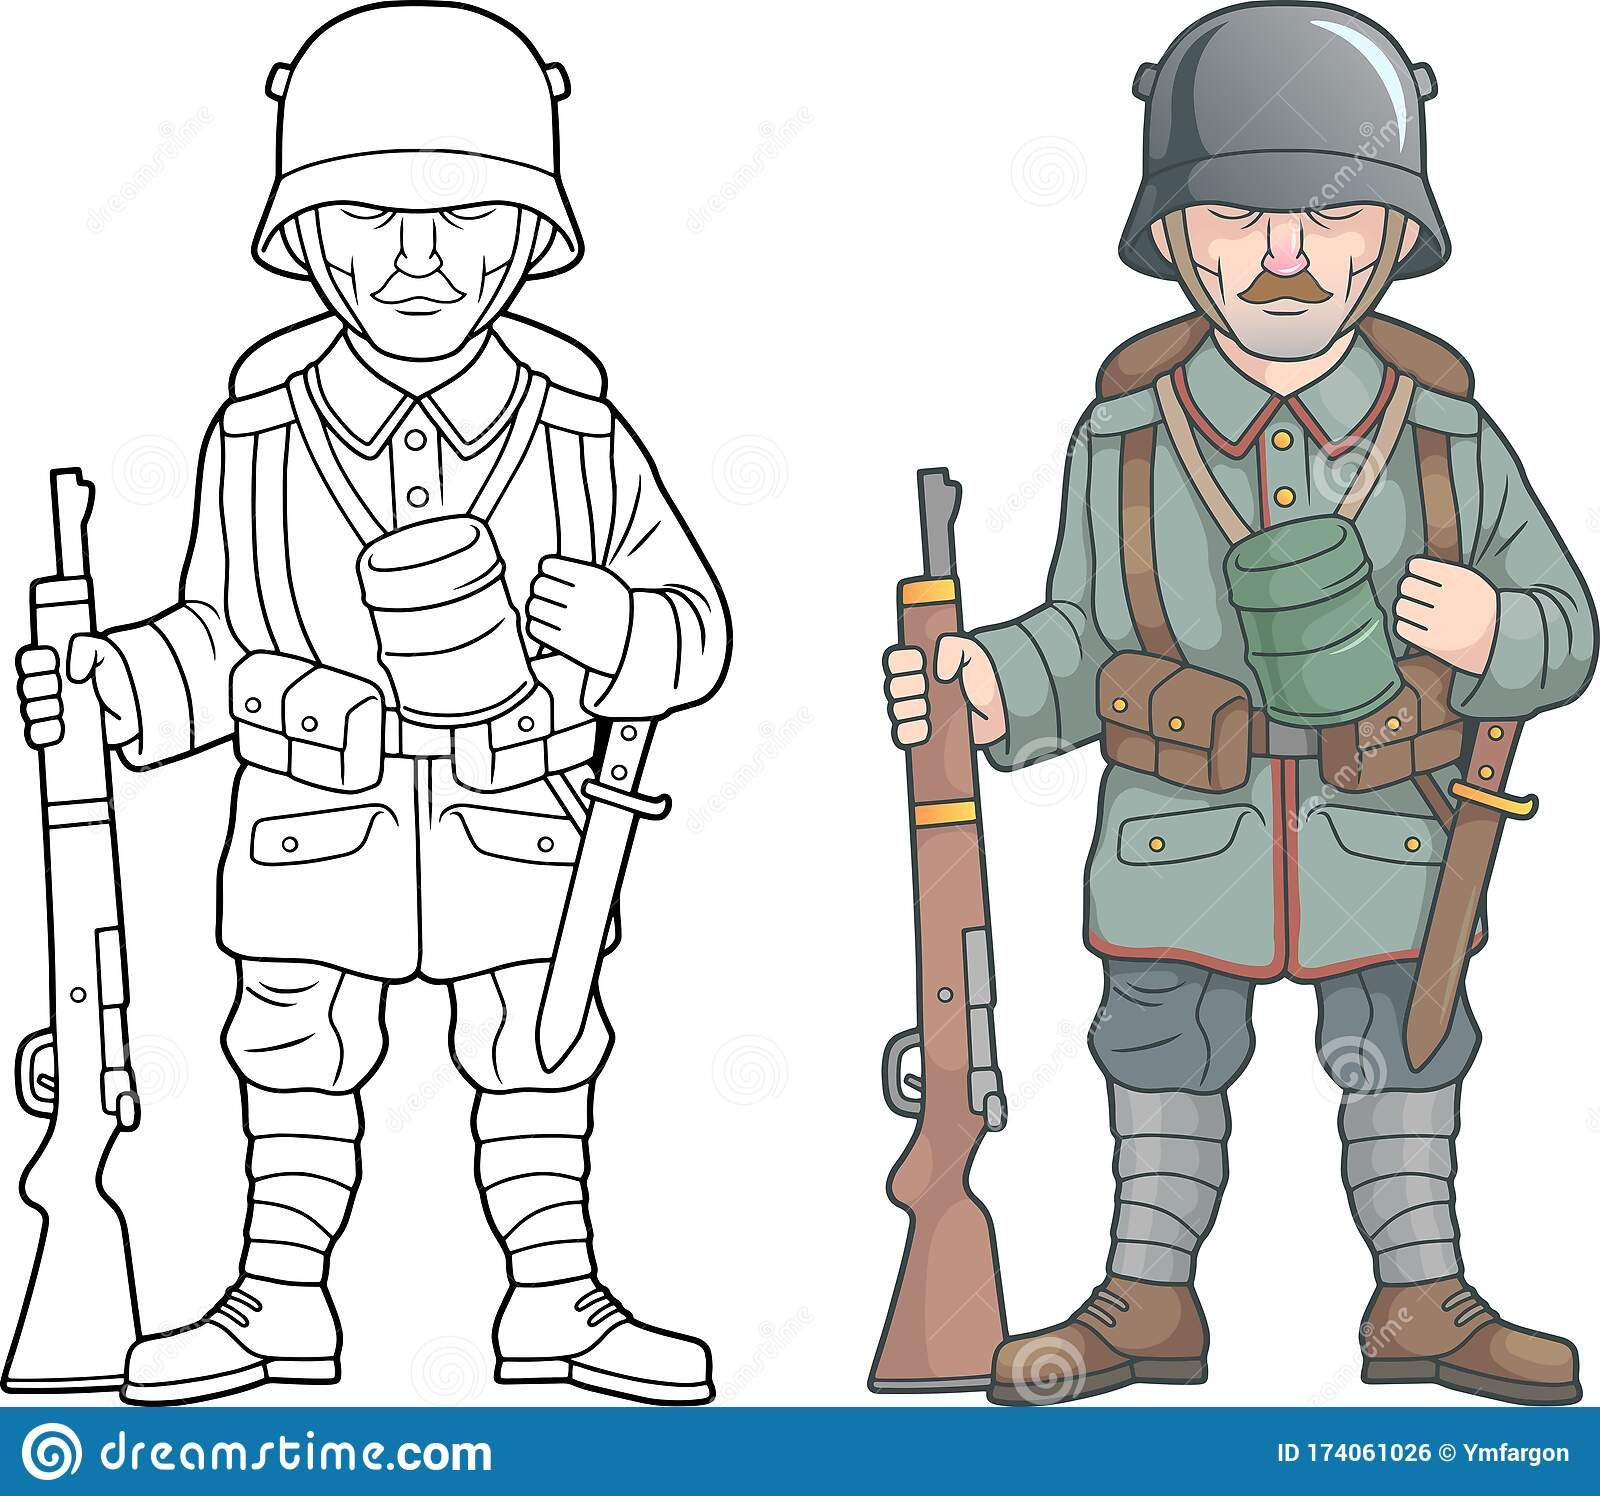 World War Soldier Drawing Stock Illustrations 383 World War Soldier Drawing Stock Illustrations Vectors Clipart Dreamstime